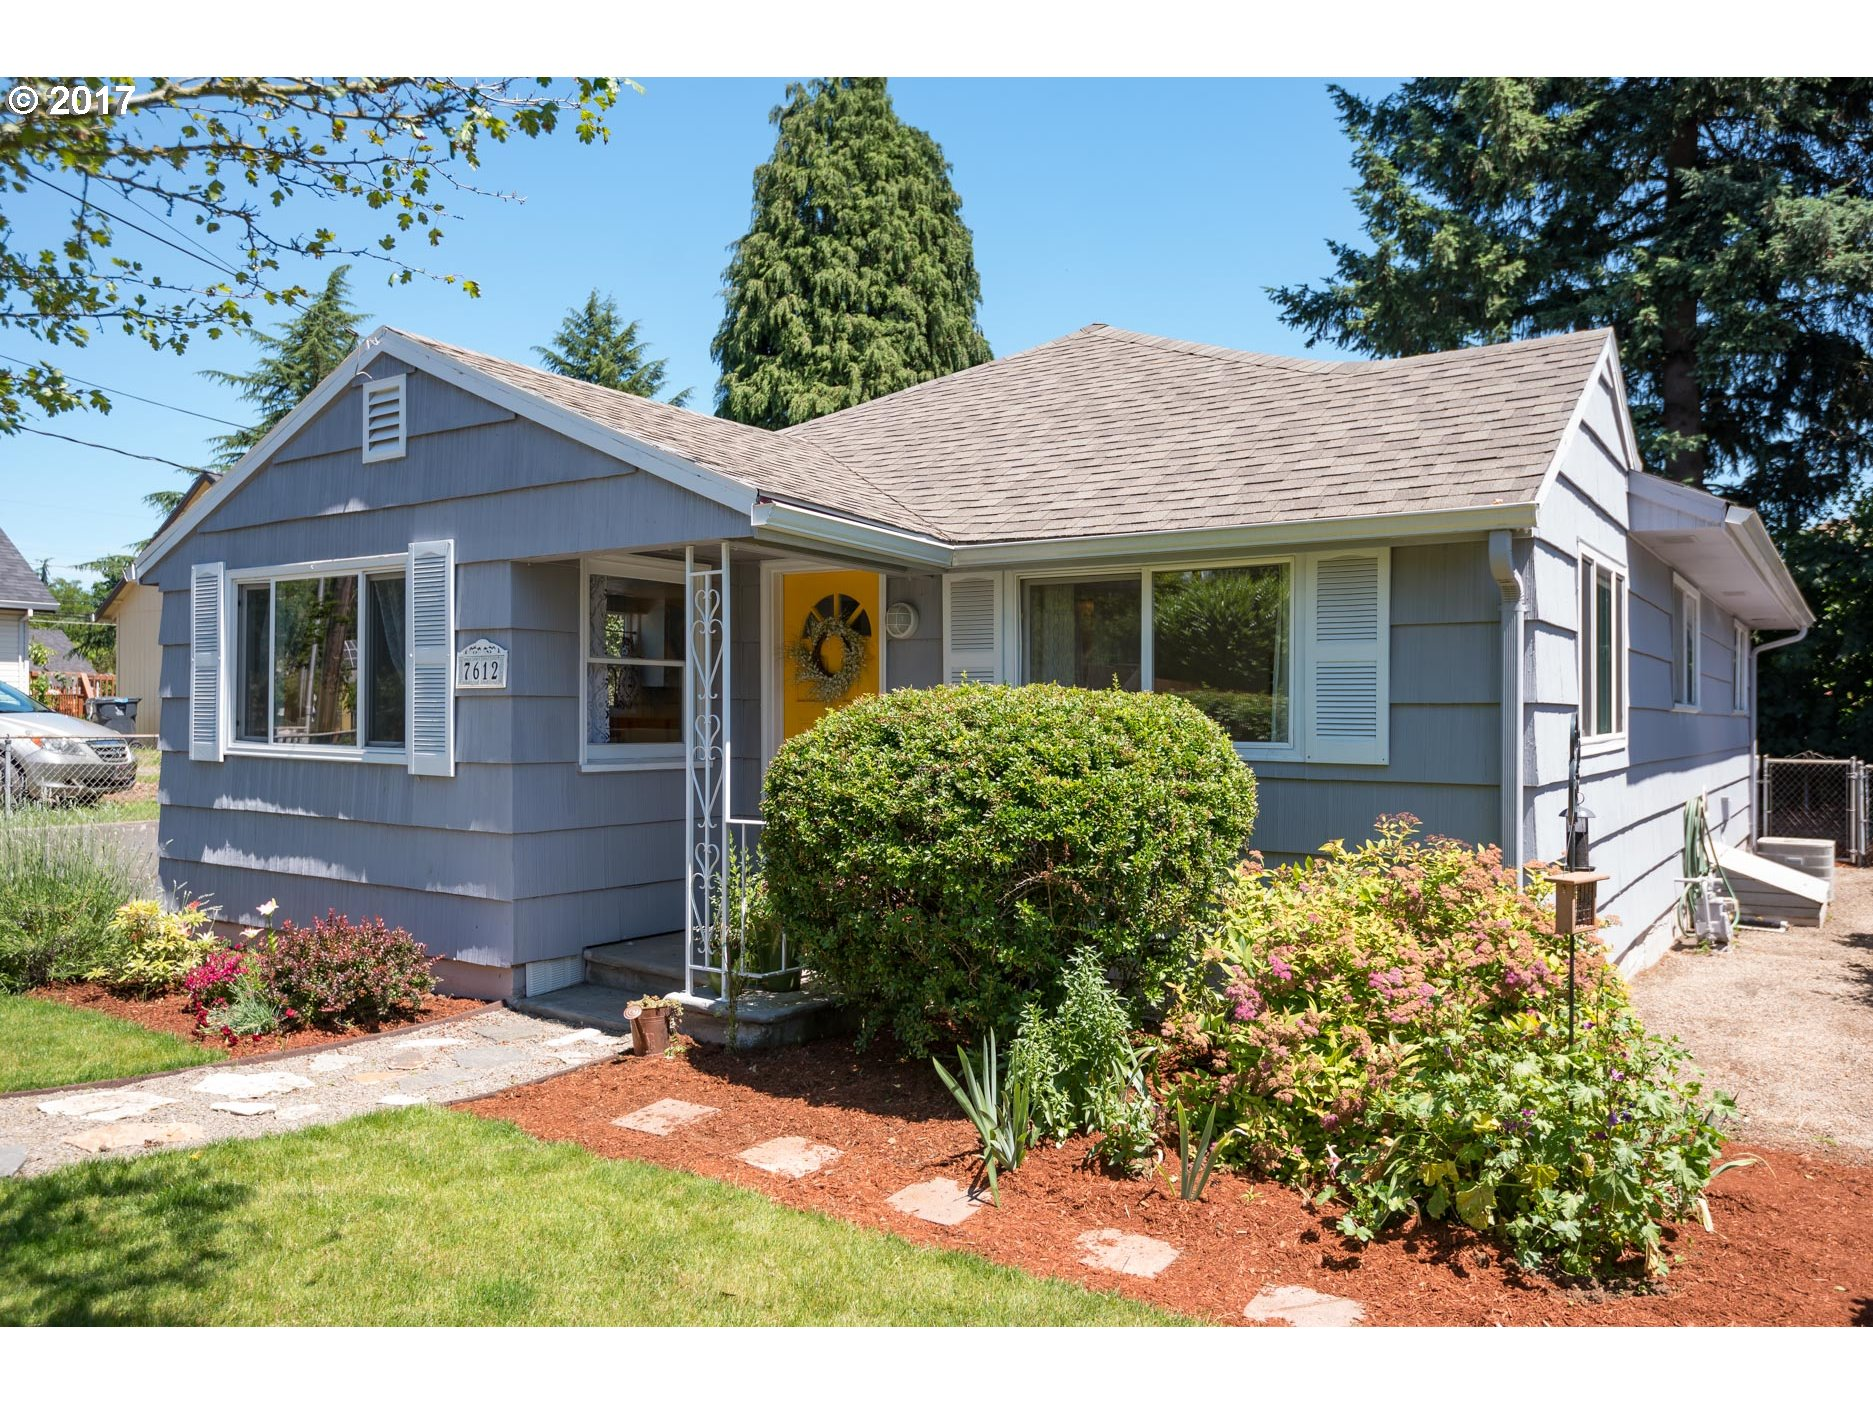 7612 SE 62ND AVE Portland, OR 97206 - MLS #: 17017779